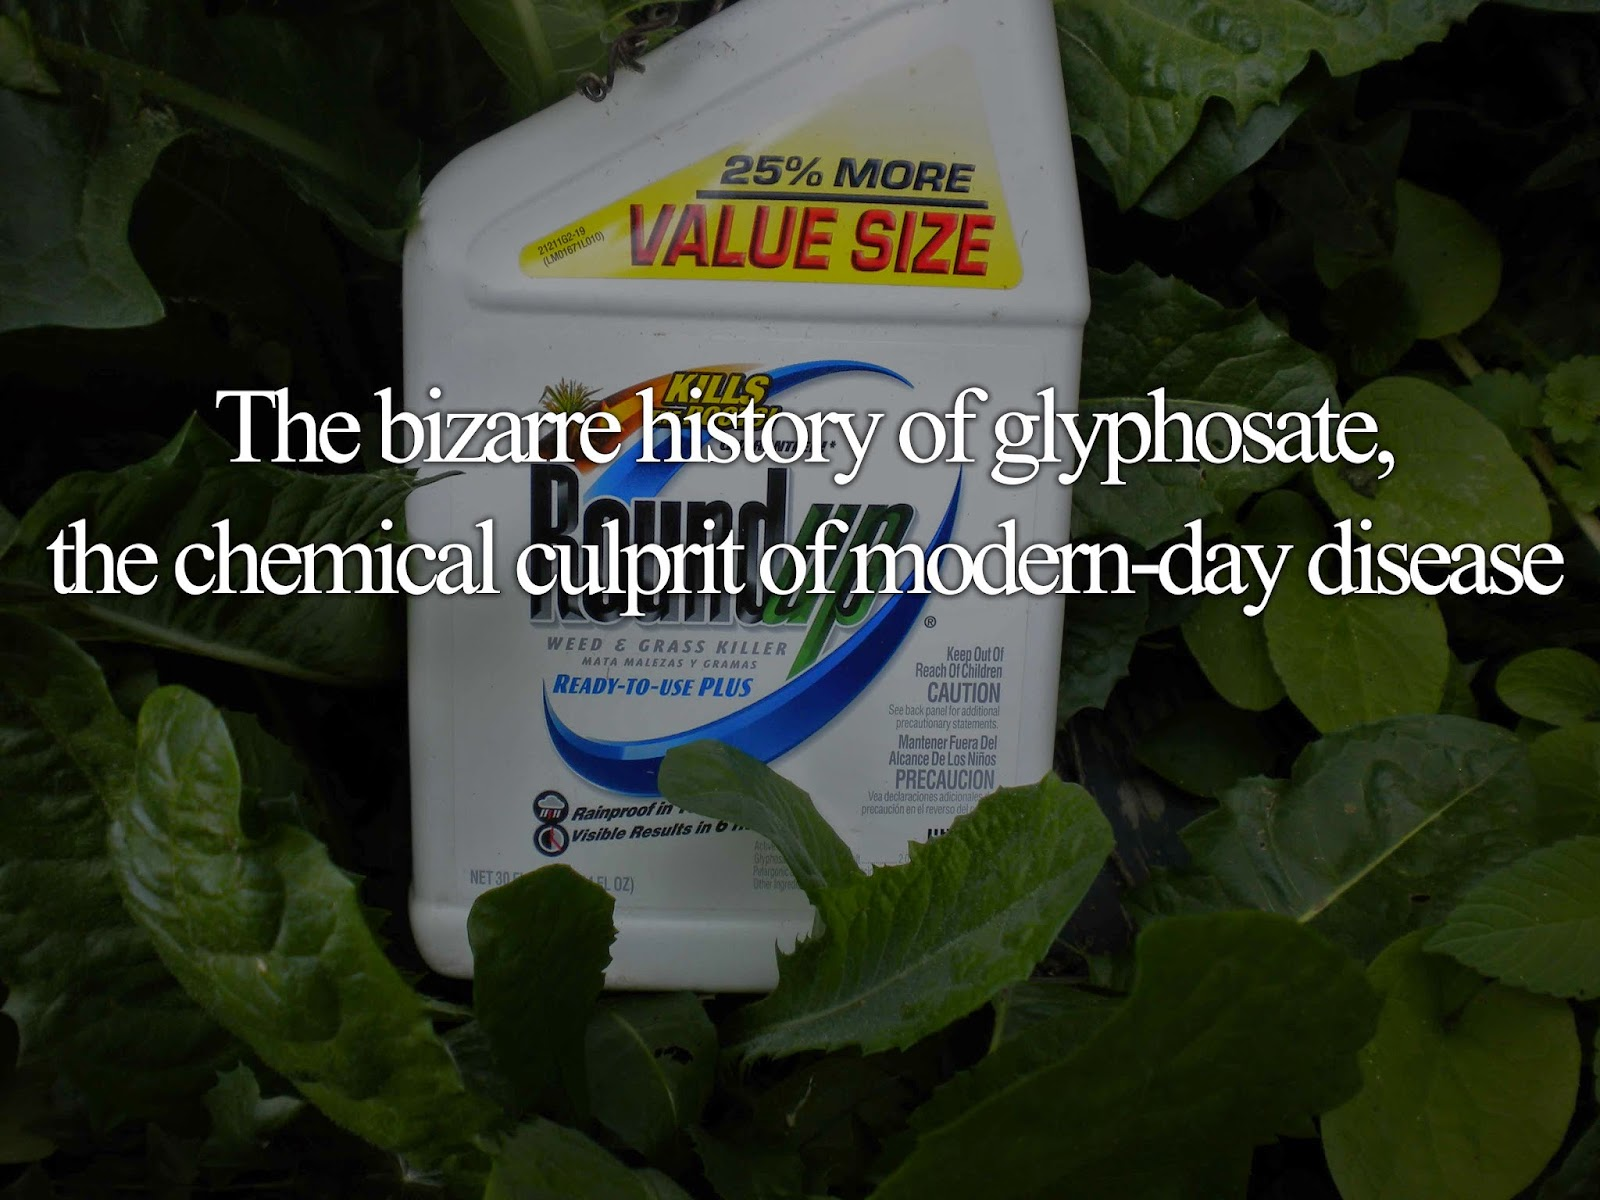 The bizarre history of glyphosate, the chemical culprit of modern-day disease